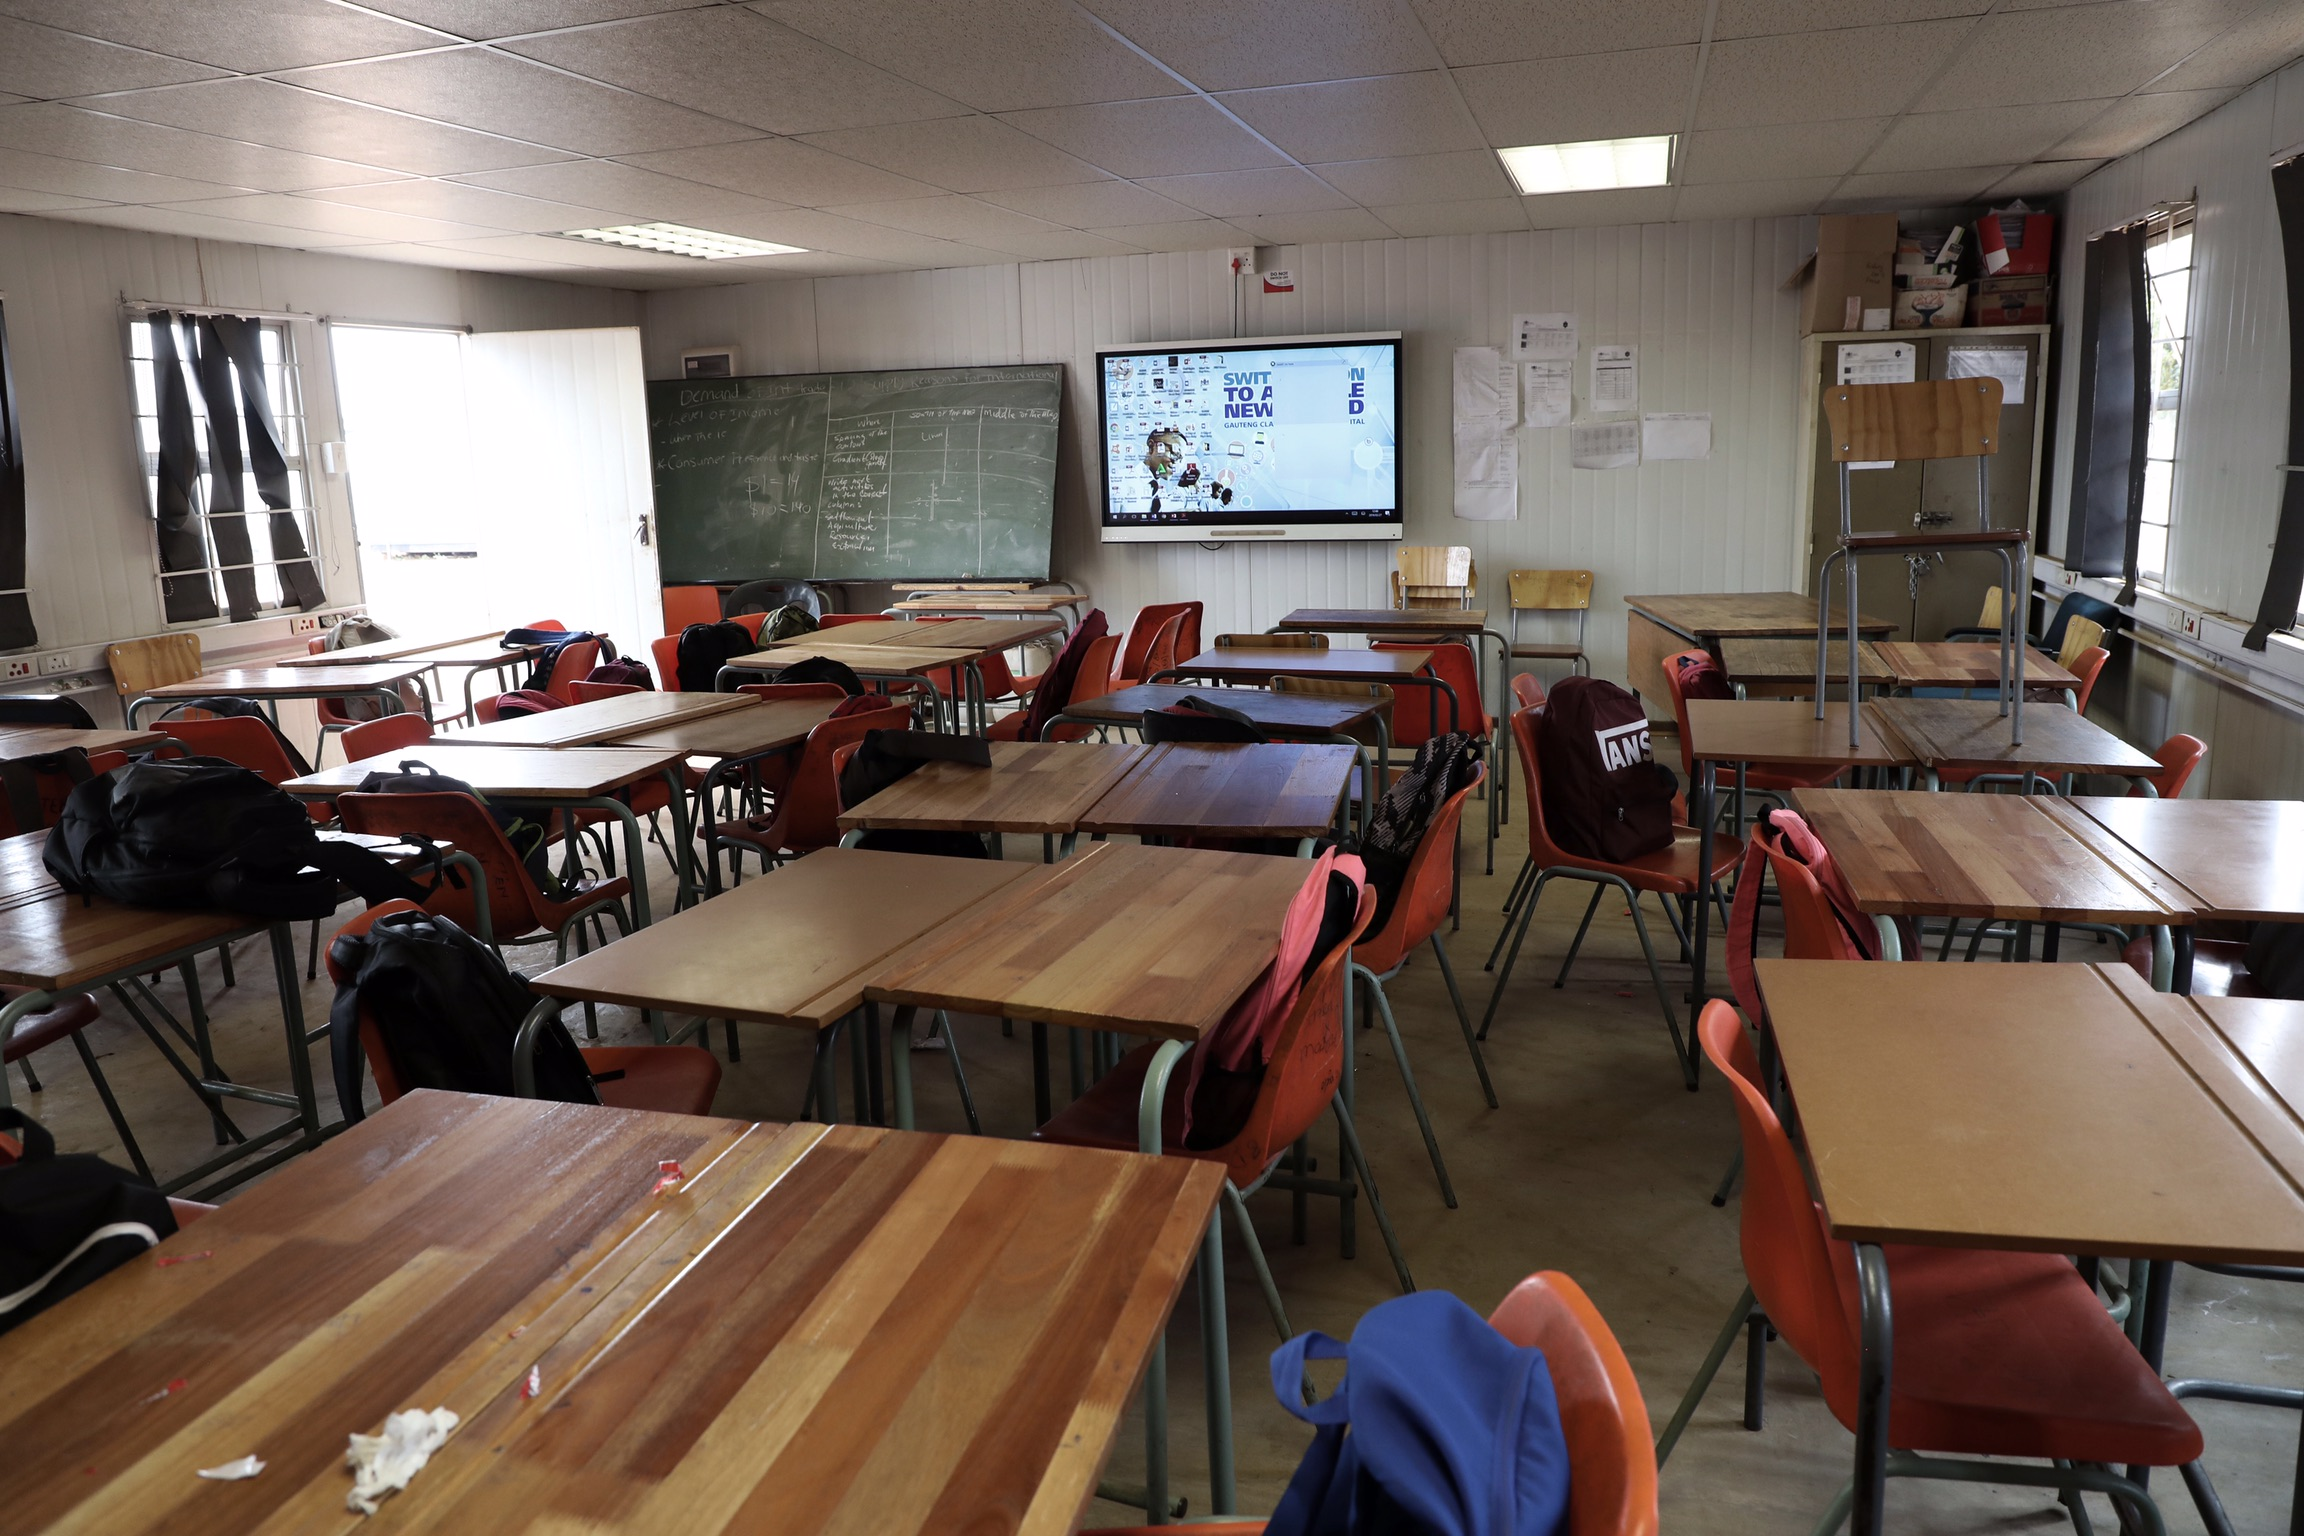 THE IMF REPORT ON SOUTH AFRICA DIRE EDUCATION SYSTEM IS NEWS